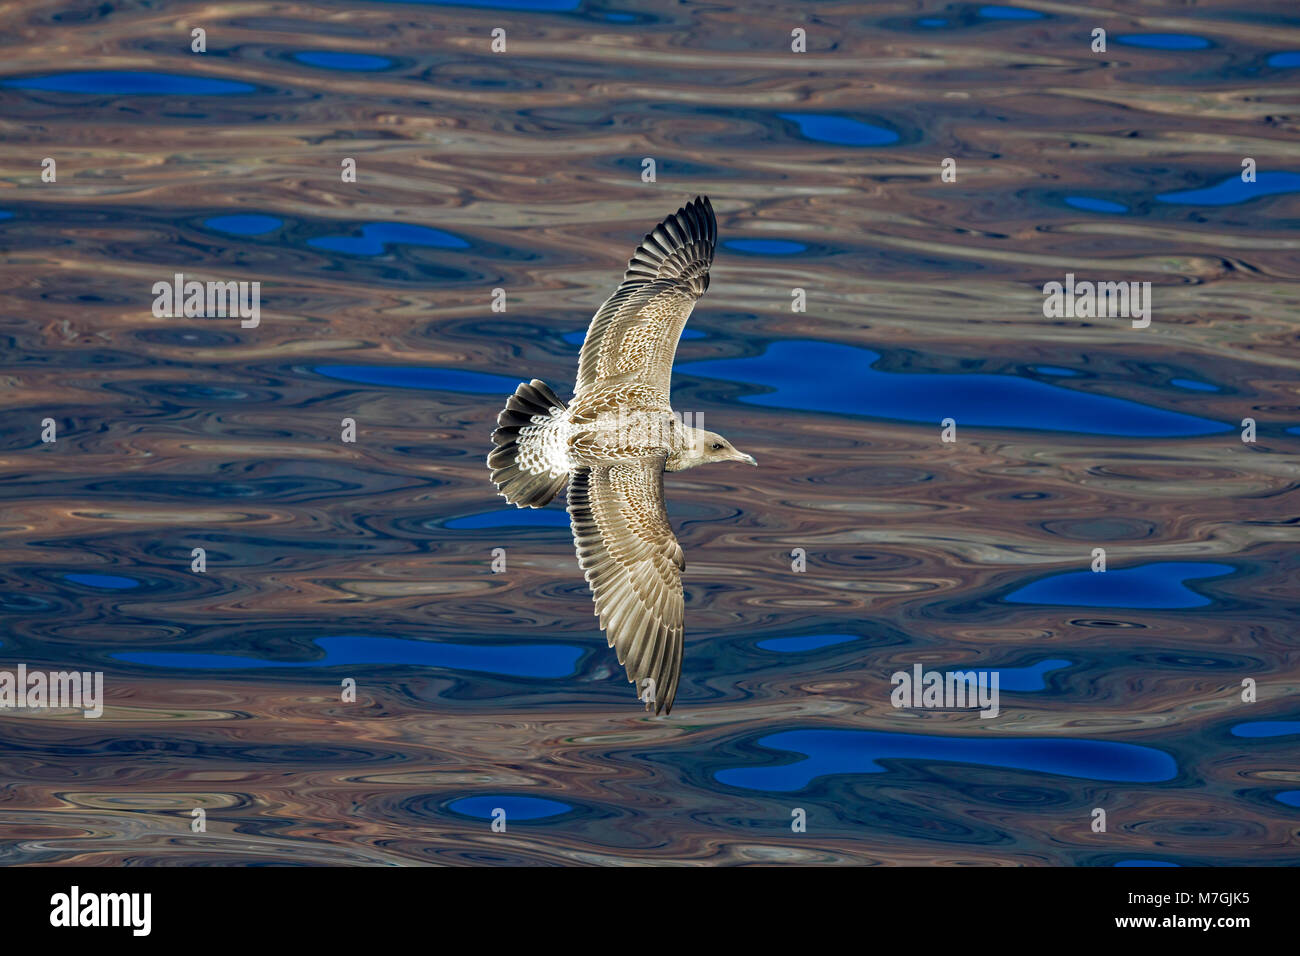 The western gull,Larus occidentalis, is a large white-headed gull that lives on the west coast of North America. - Stock Image